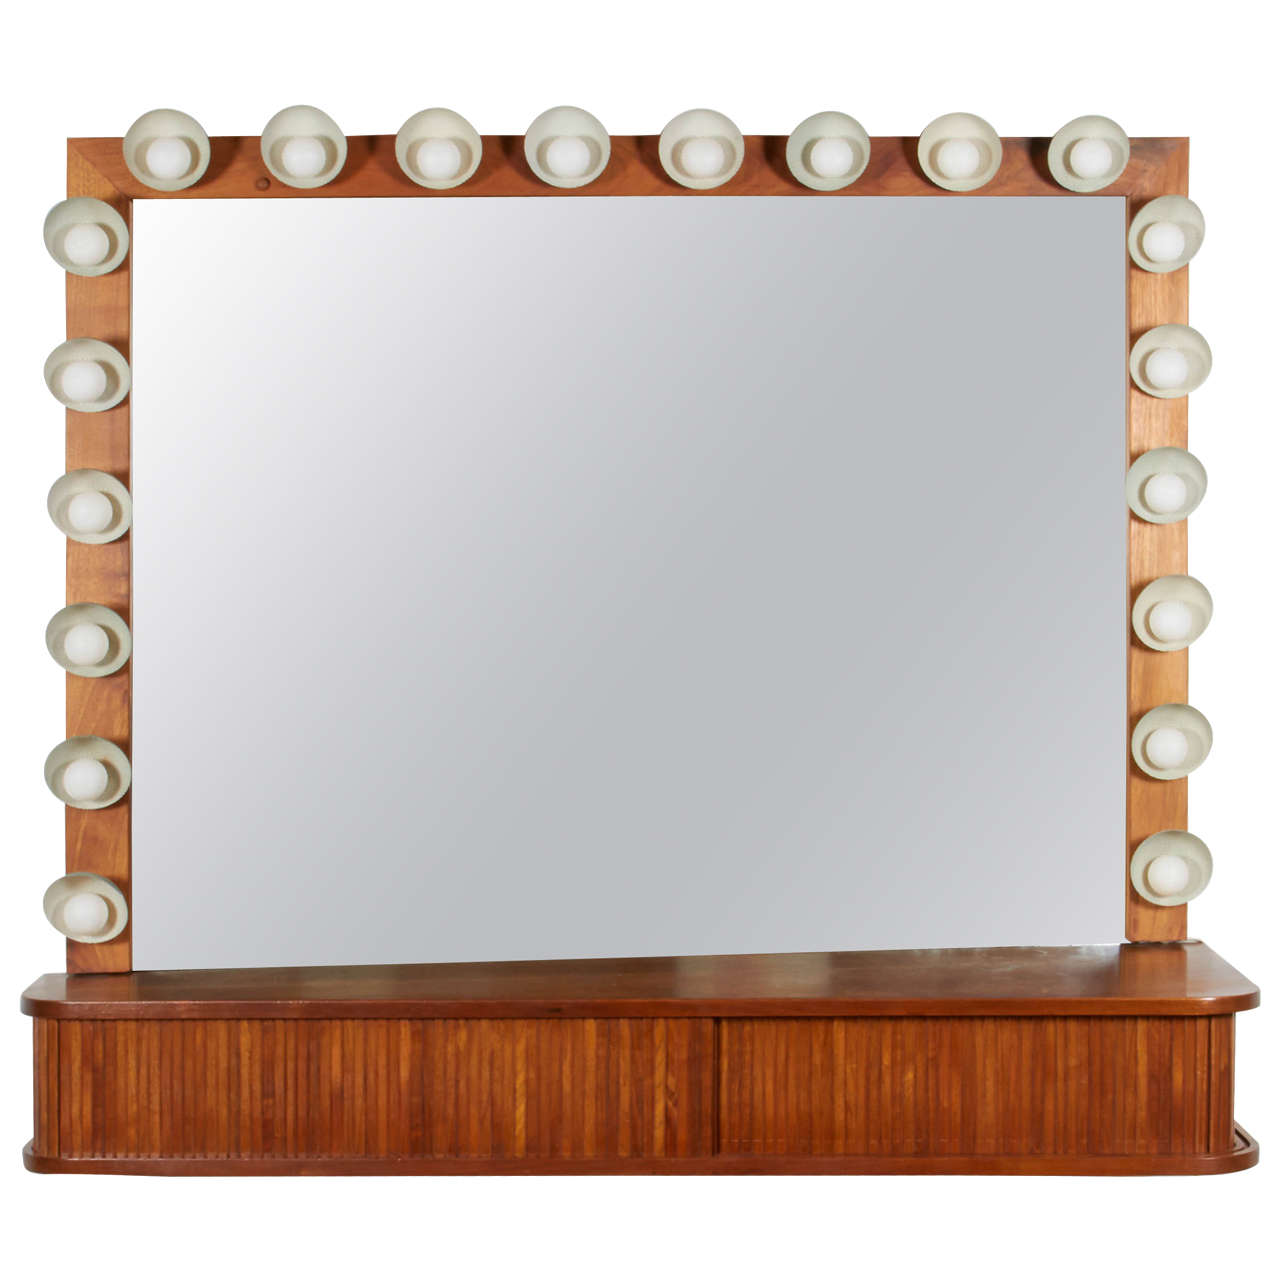 Custom Vanity with Perforated Metal Light Shades, Richard M. Wakamoto, 1957 For Sale at 1stdibs